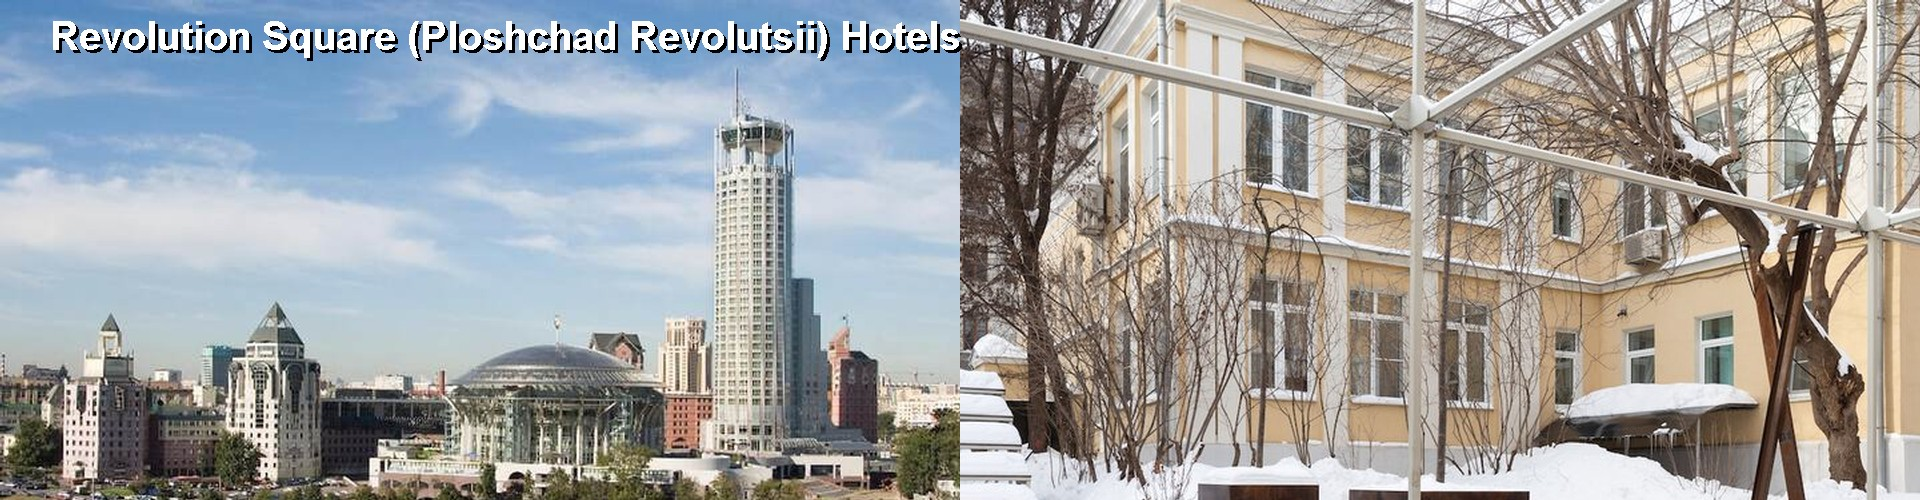 5 Best Hotels near Revolution Square (Ploshchad Revolutsii)